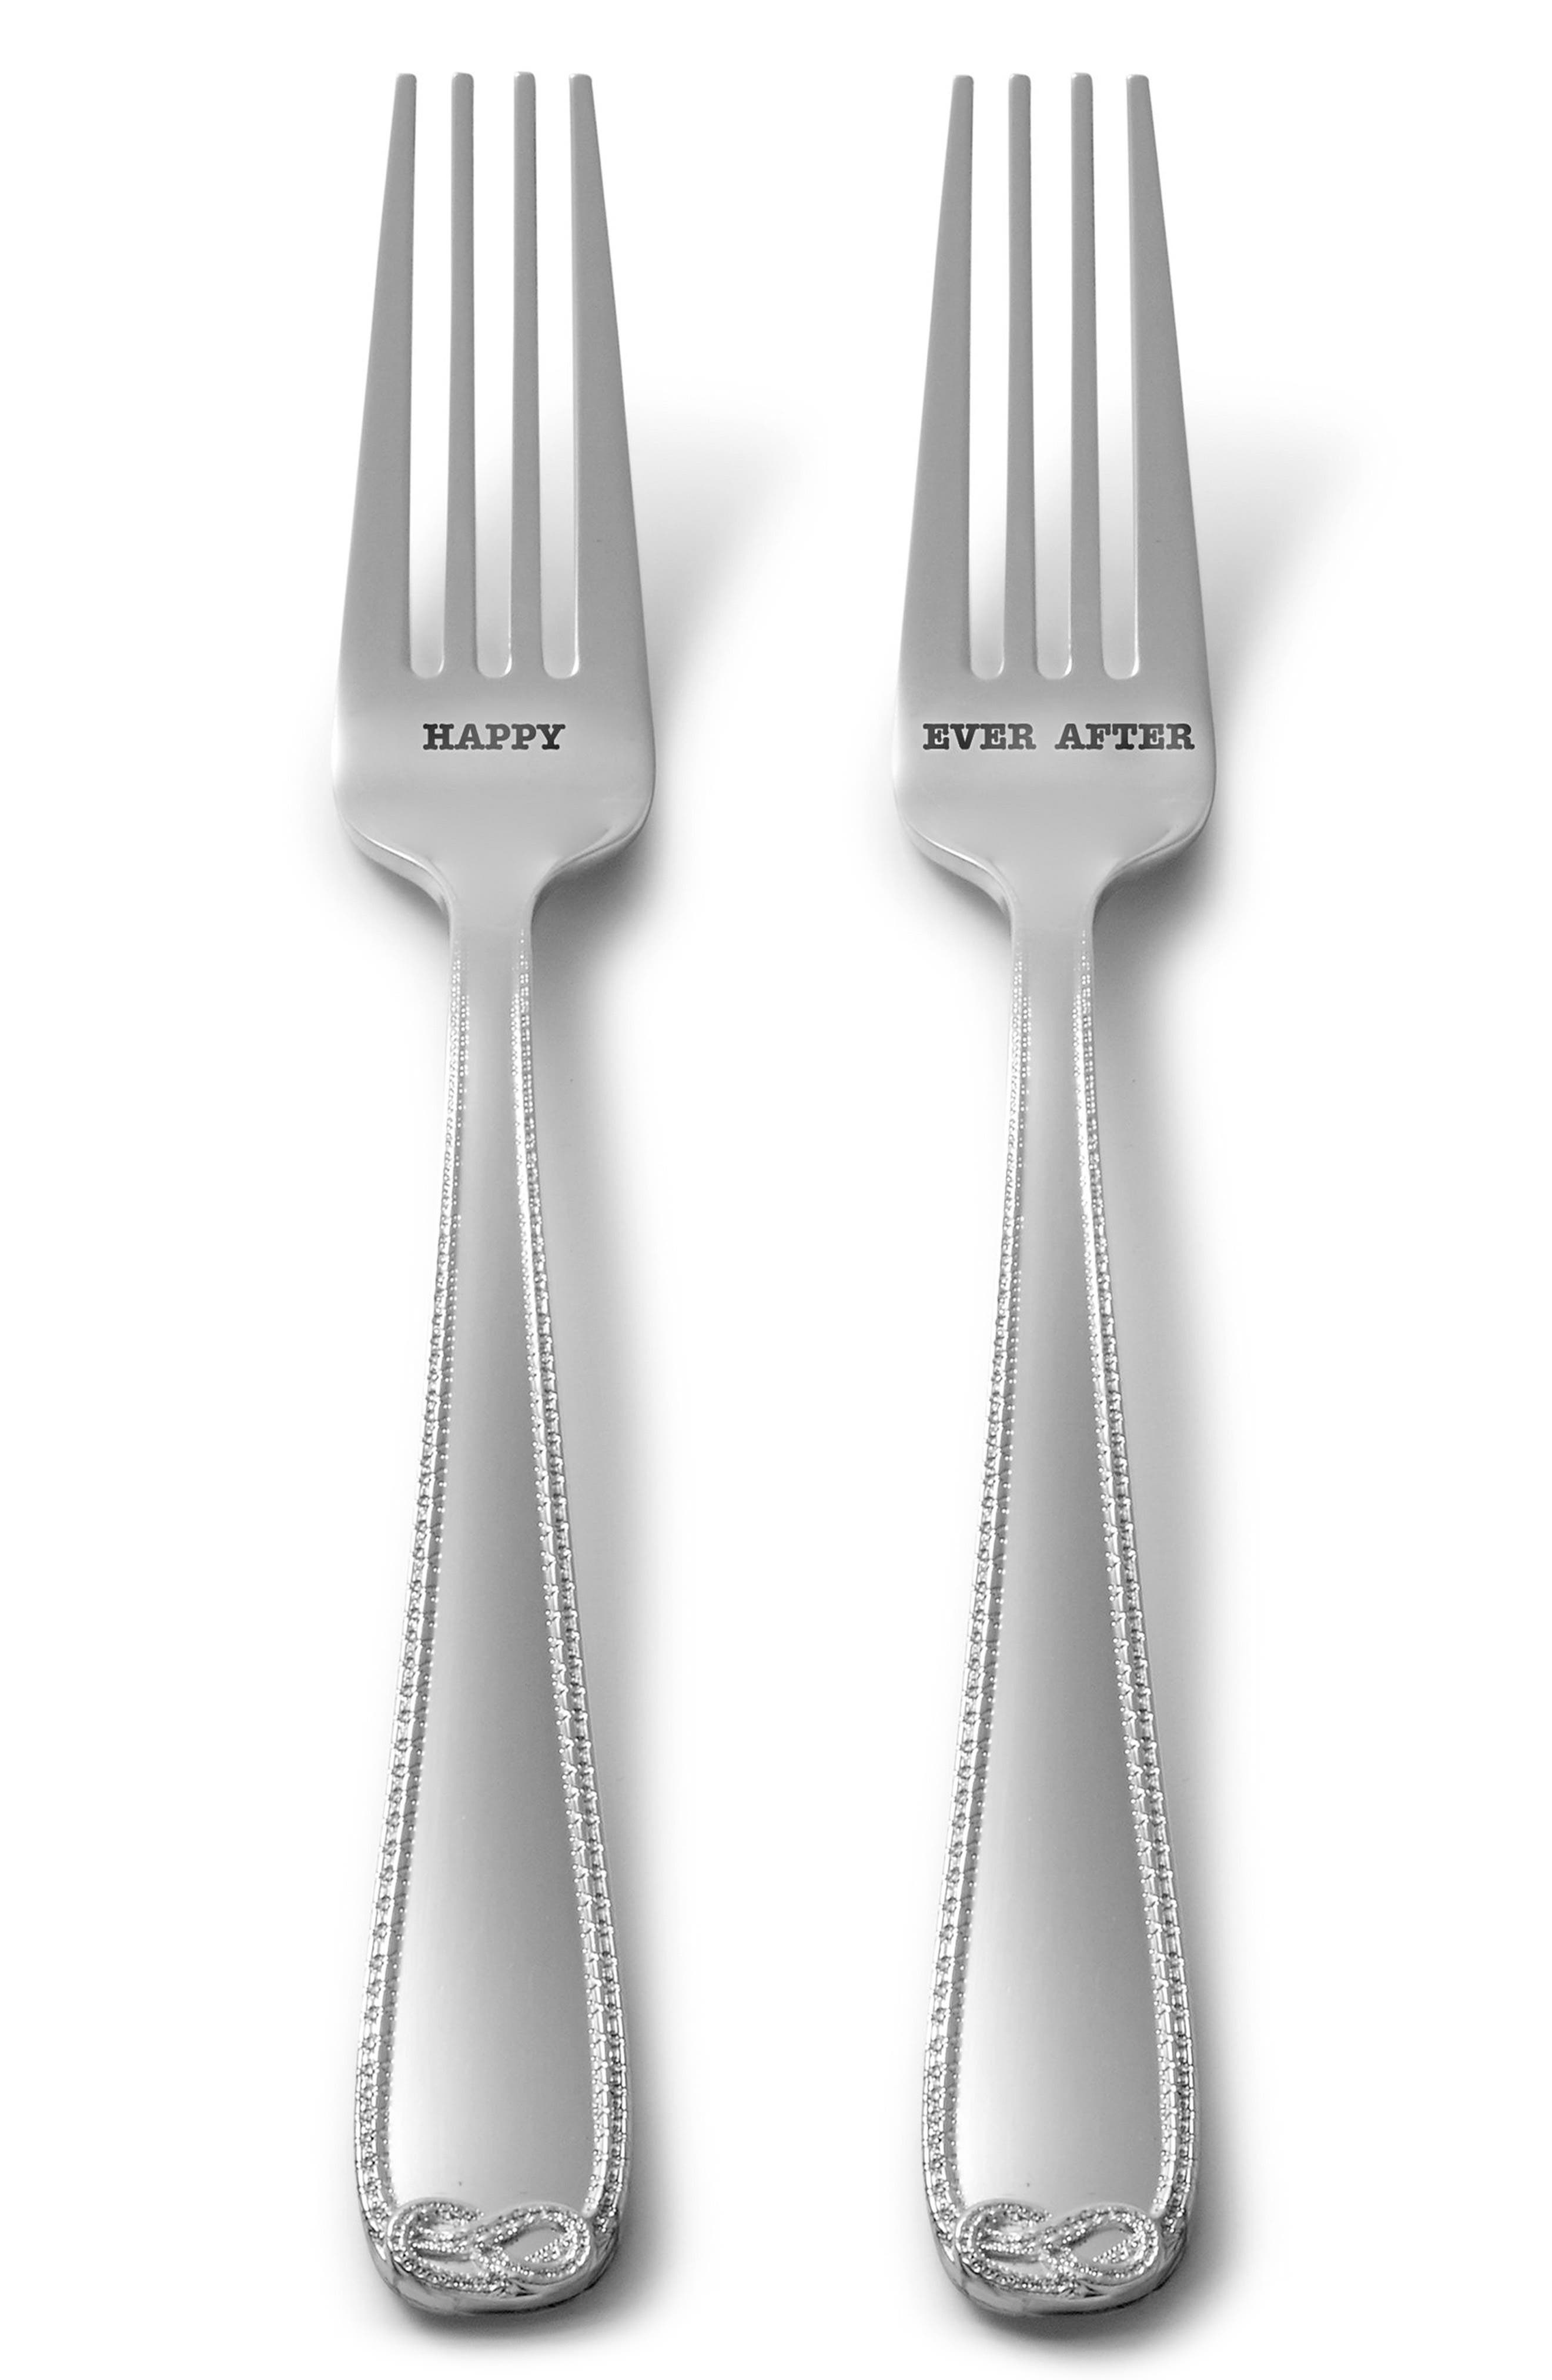 Vera Wang x Wedgwood Infinity Happy Ever After Set of 2 Silver Plated Forks